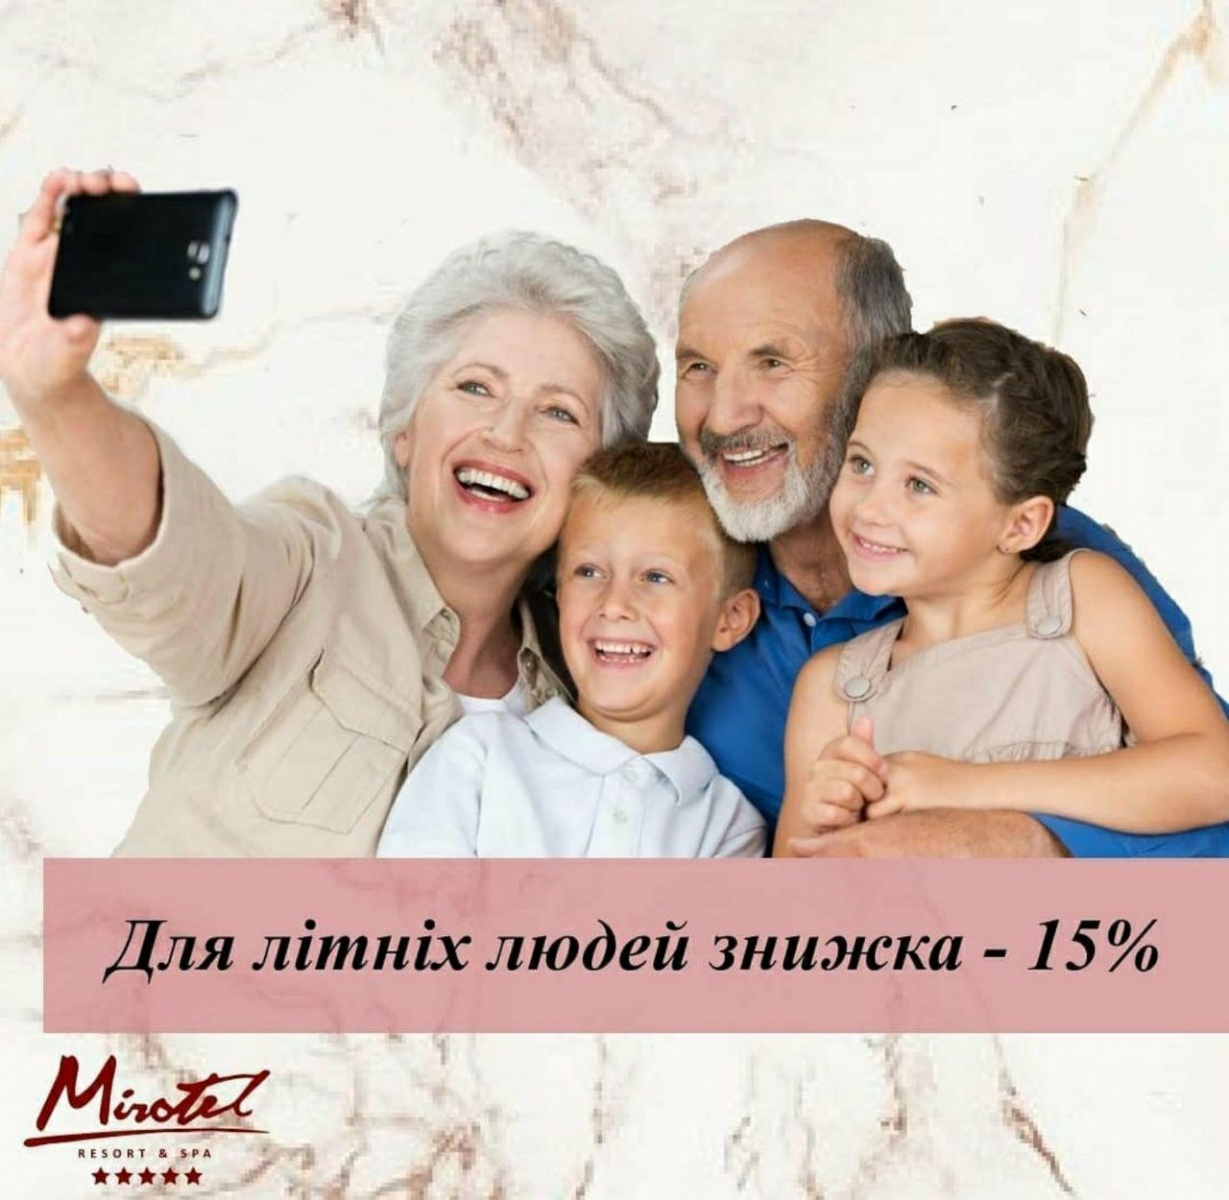 MIROTEL Resort & Spa акція -15%